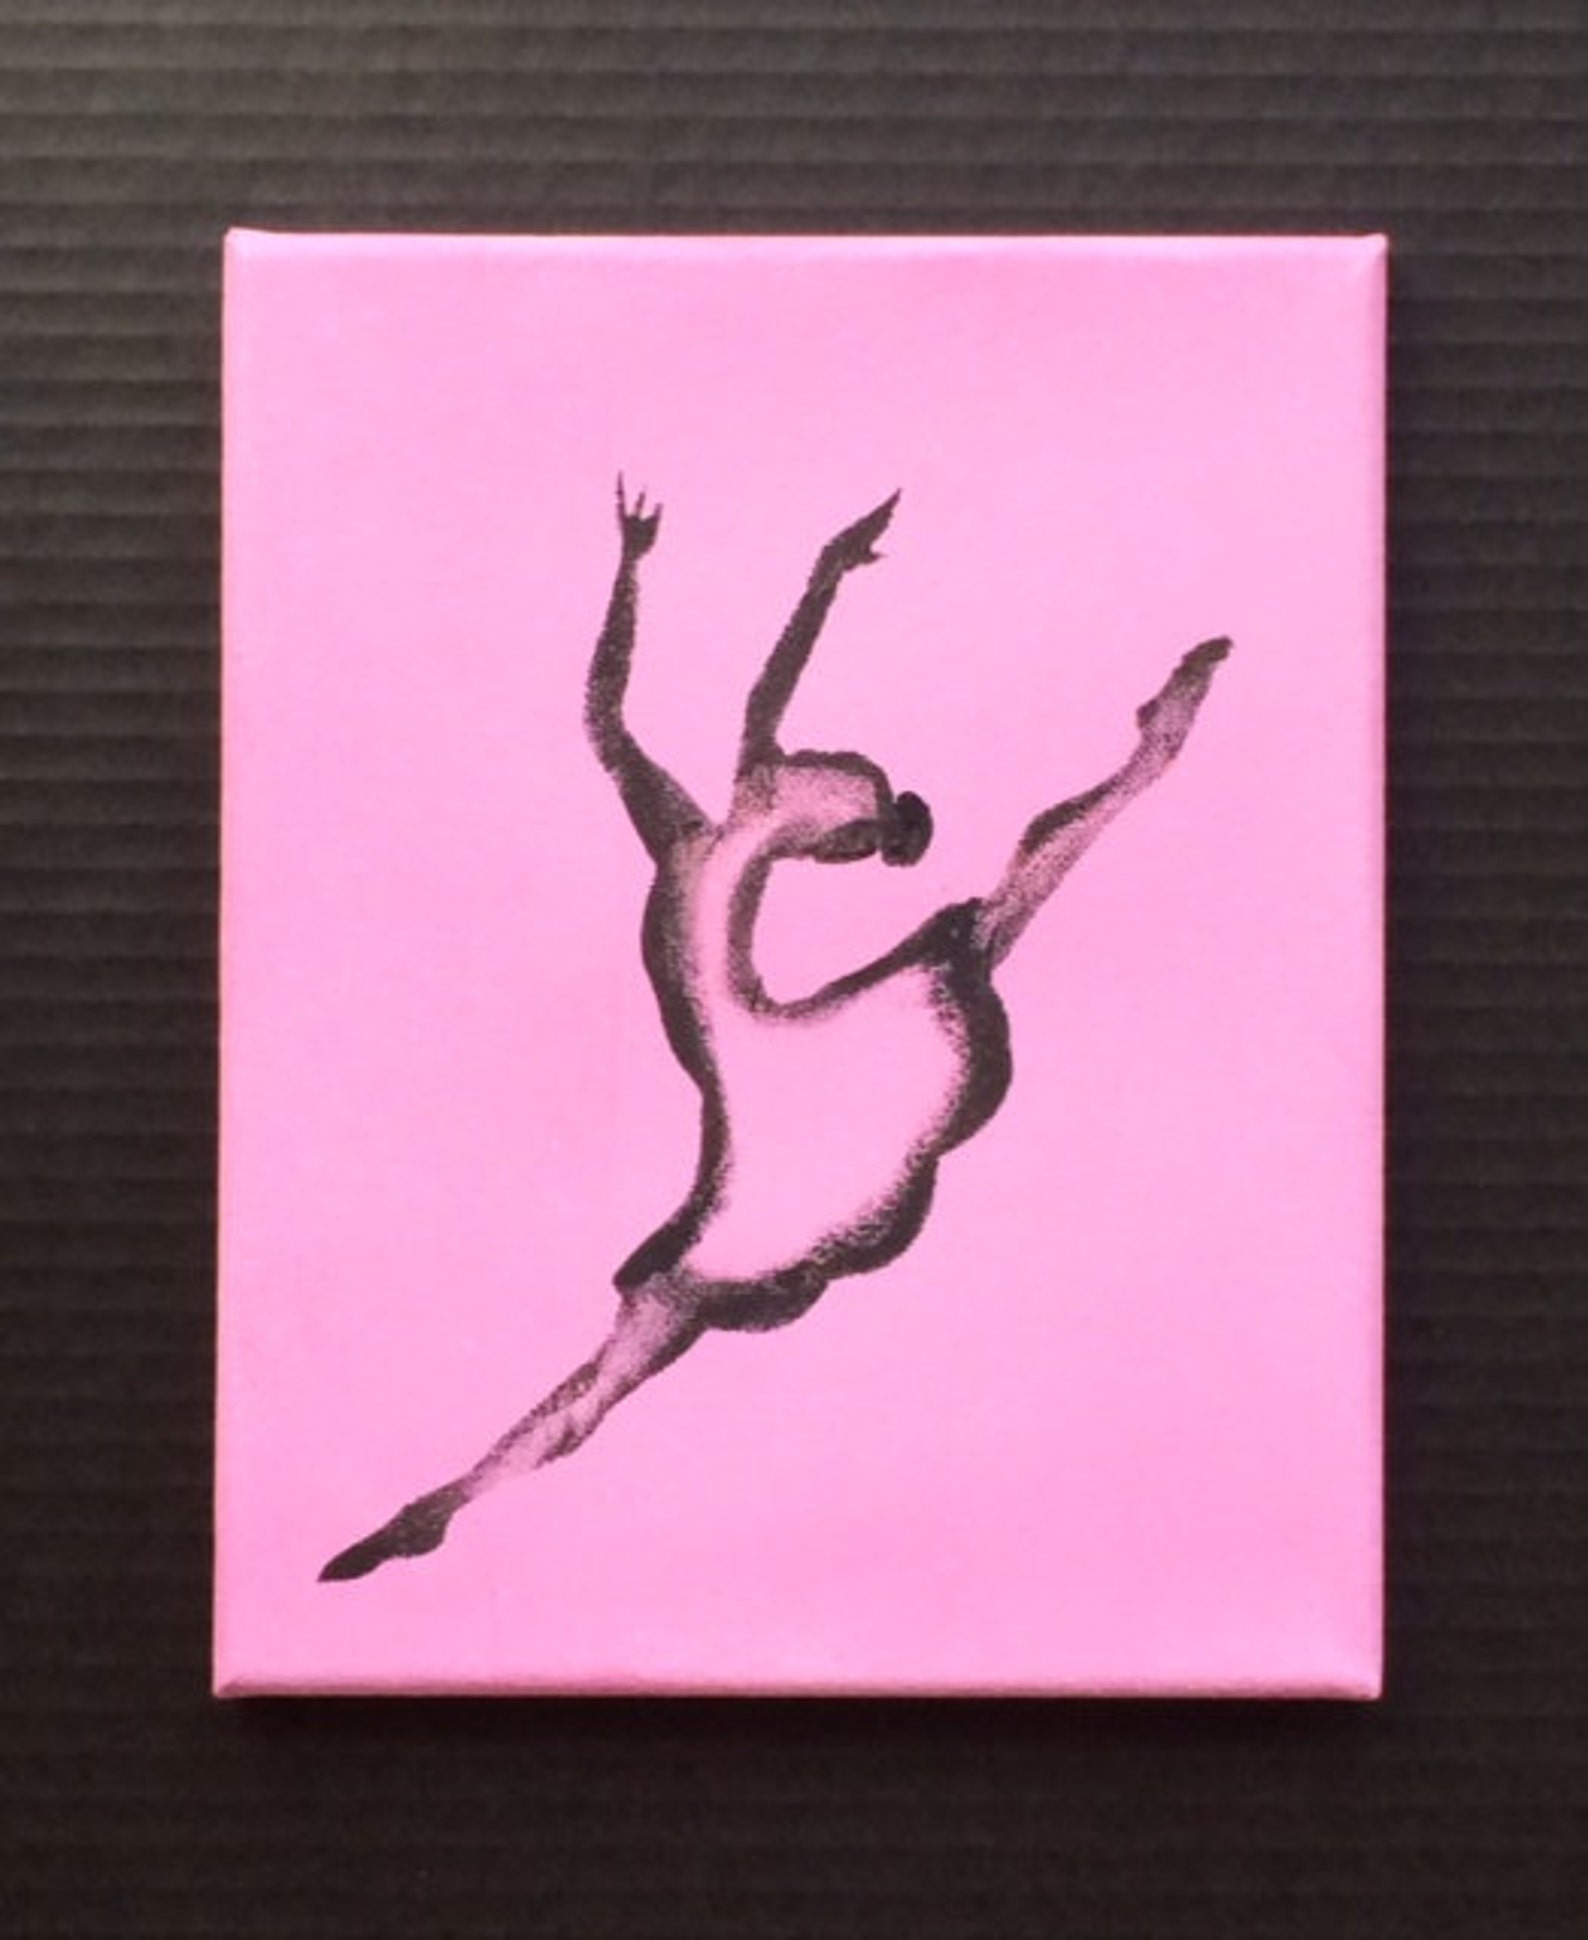 ballet art, ballerina art, original canvas art, girls room, dance art, dance studio art, girls pink rooms, dance gifts, dancer a